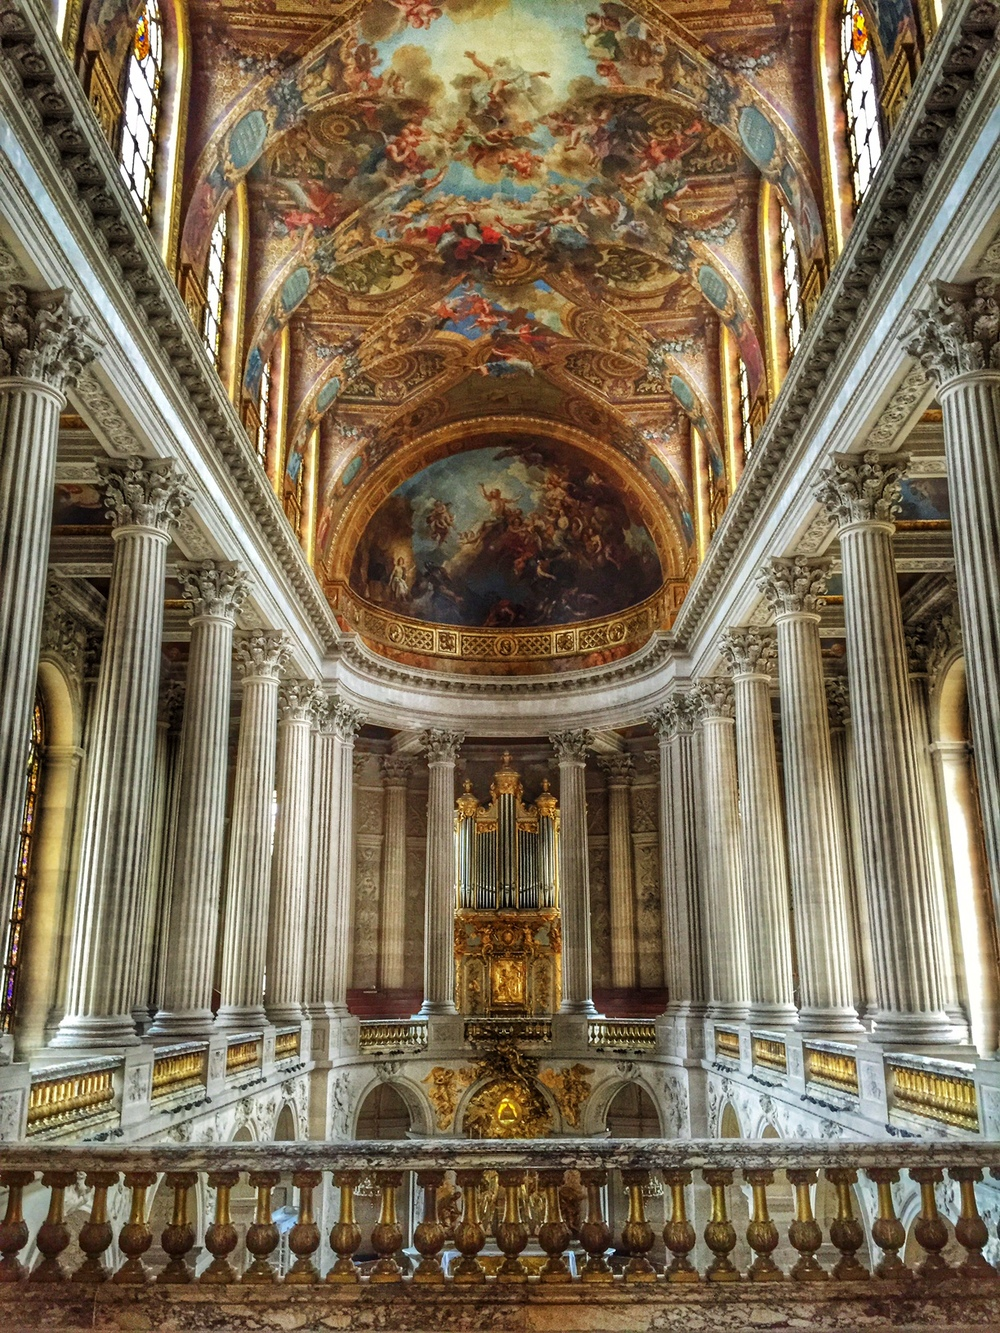 The chapel inside Versailles